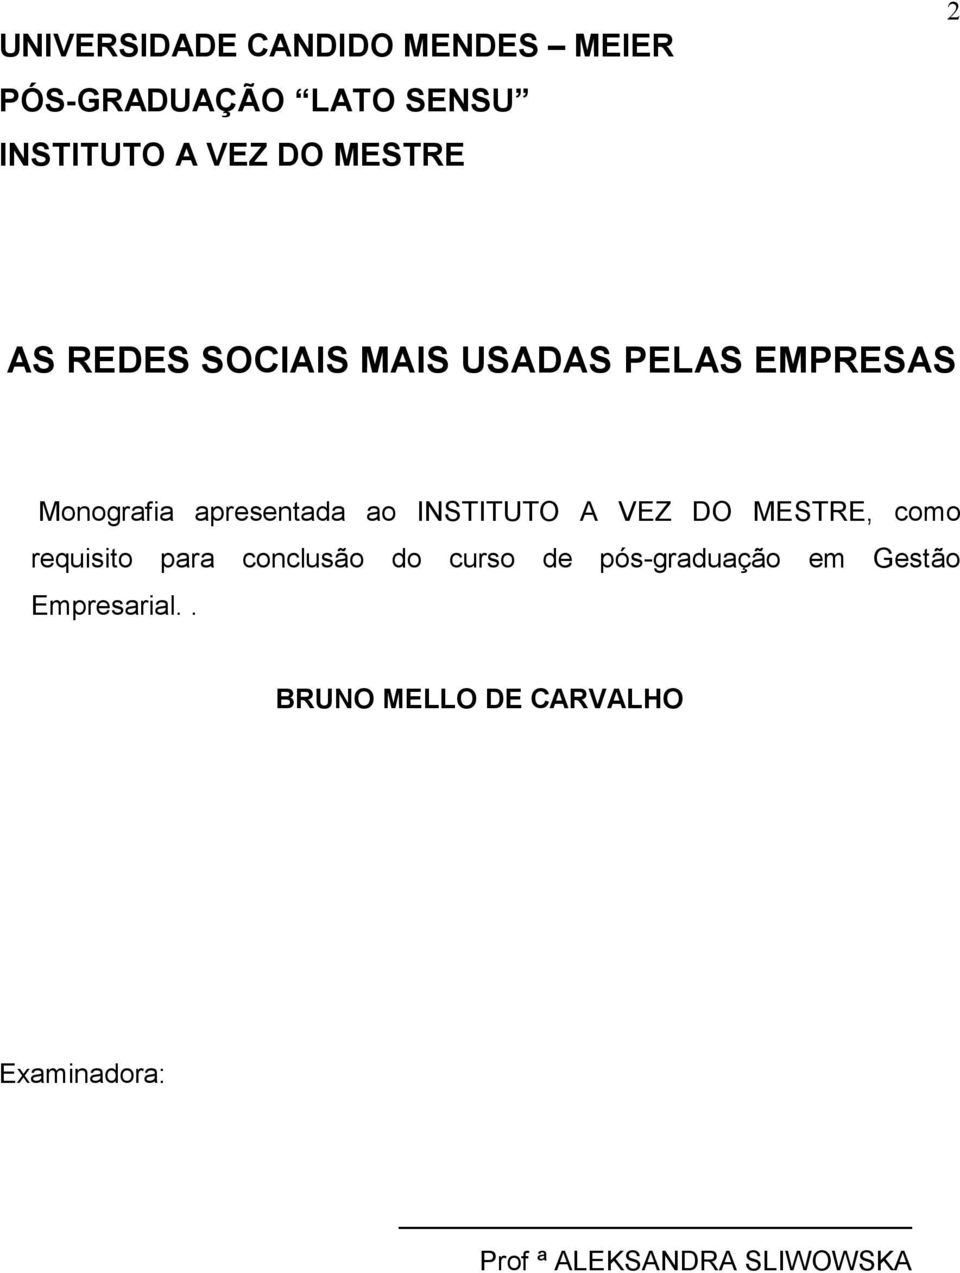 INSTITUTO A VEZ DO MESTRE, como requisito para conclusão do curso de